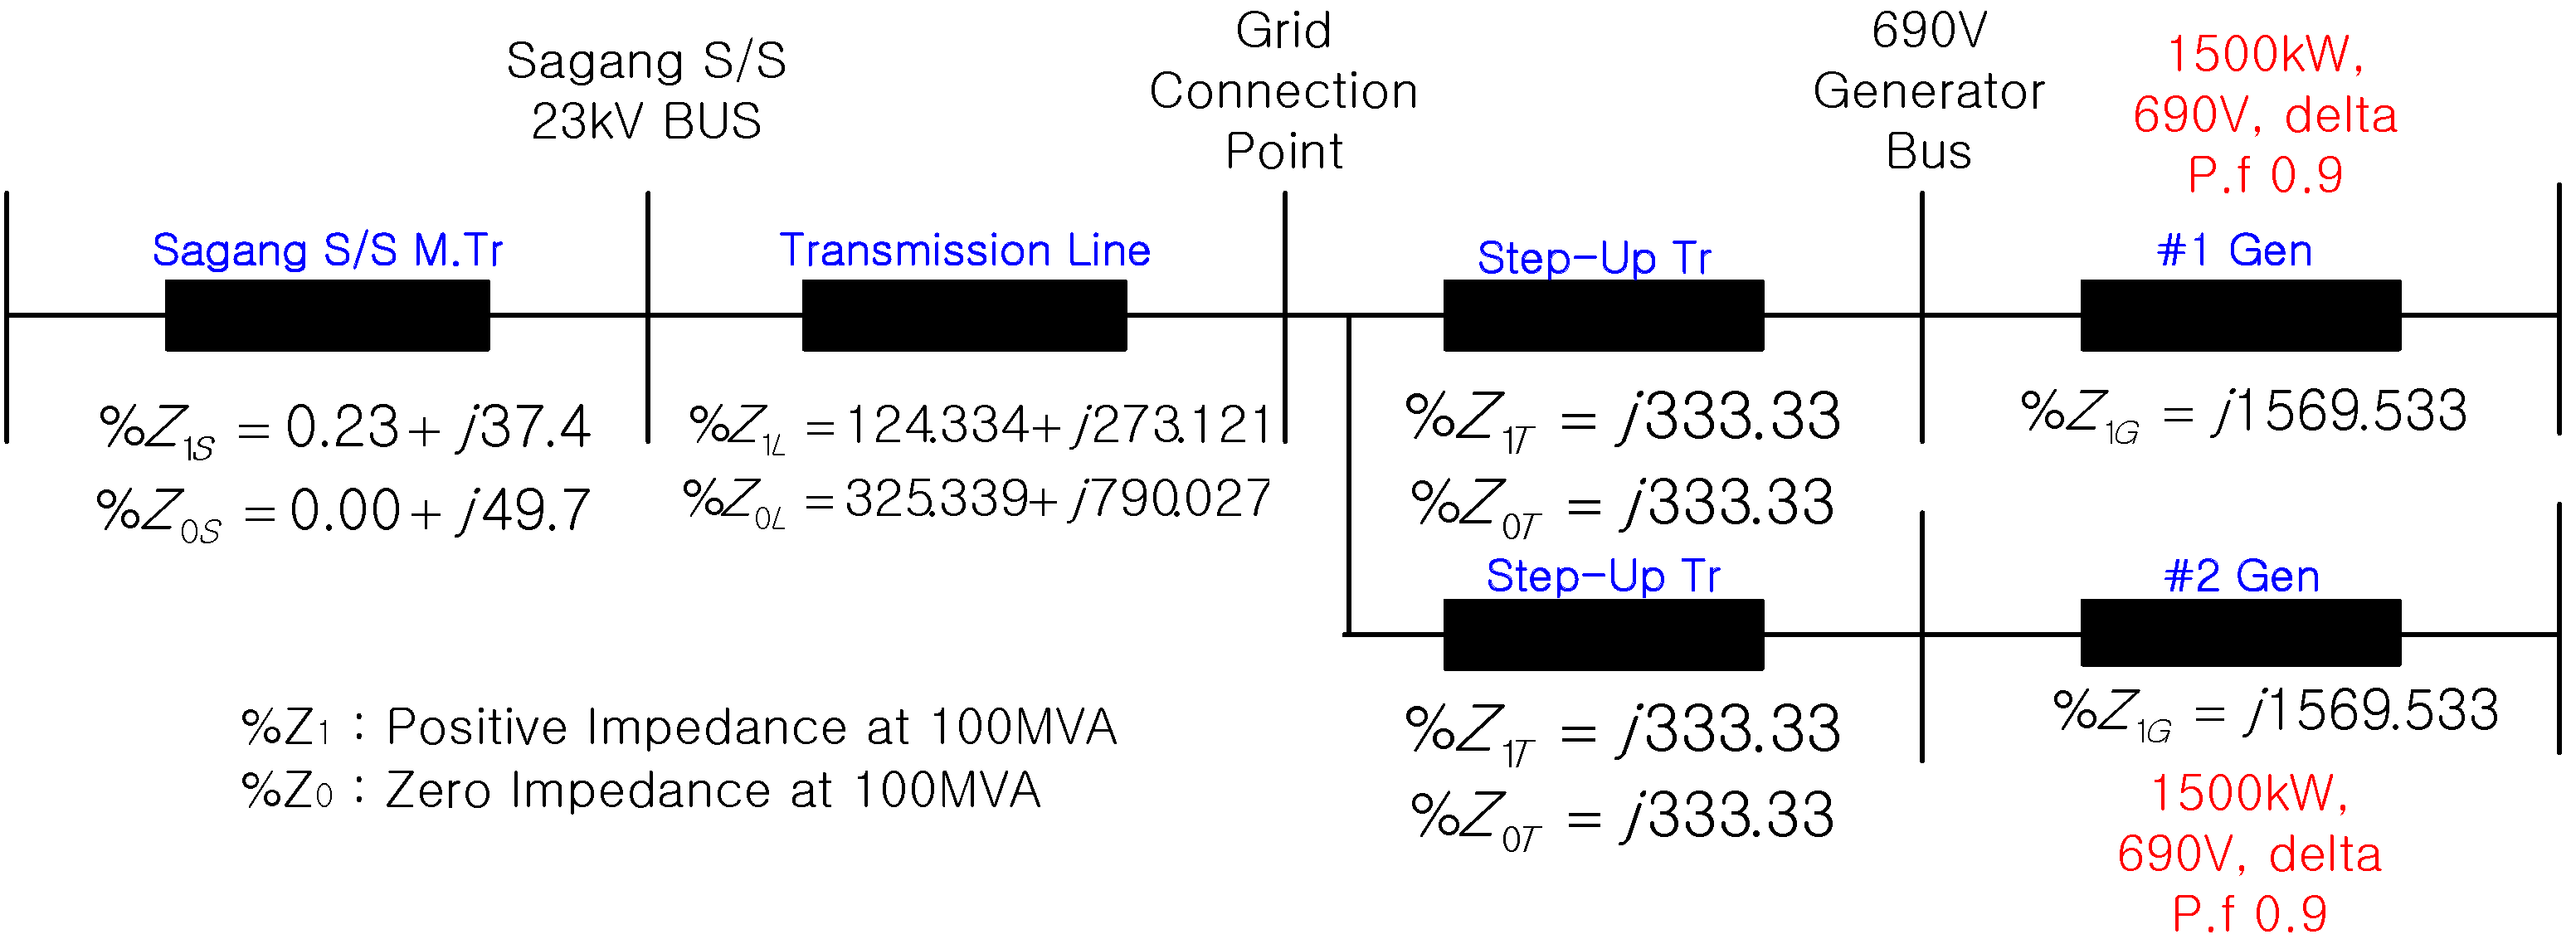 Energies Free Full Text Analysis And Solution For Operations Of Electrical Overcurrent Relay No